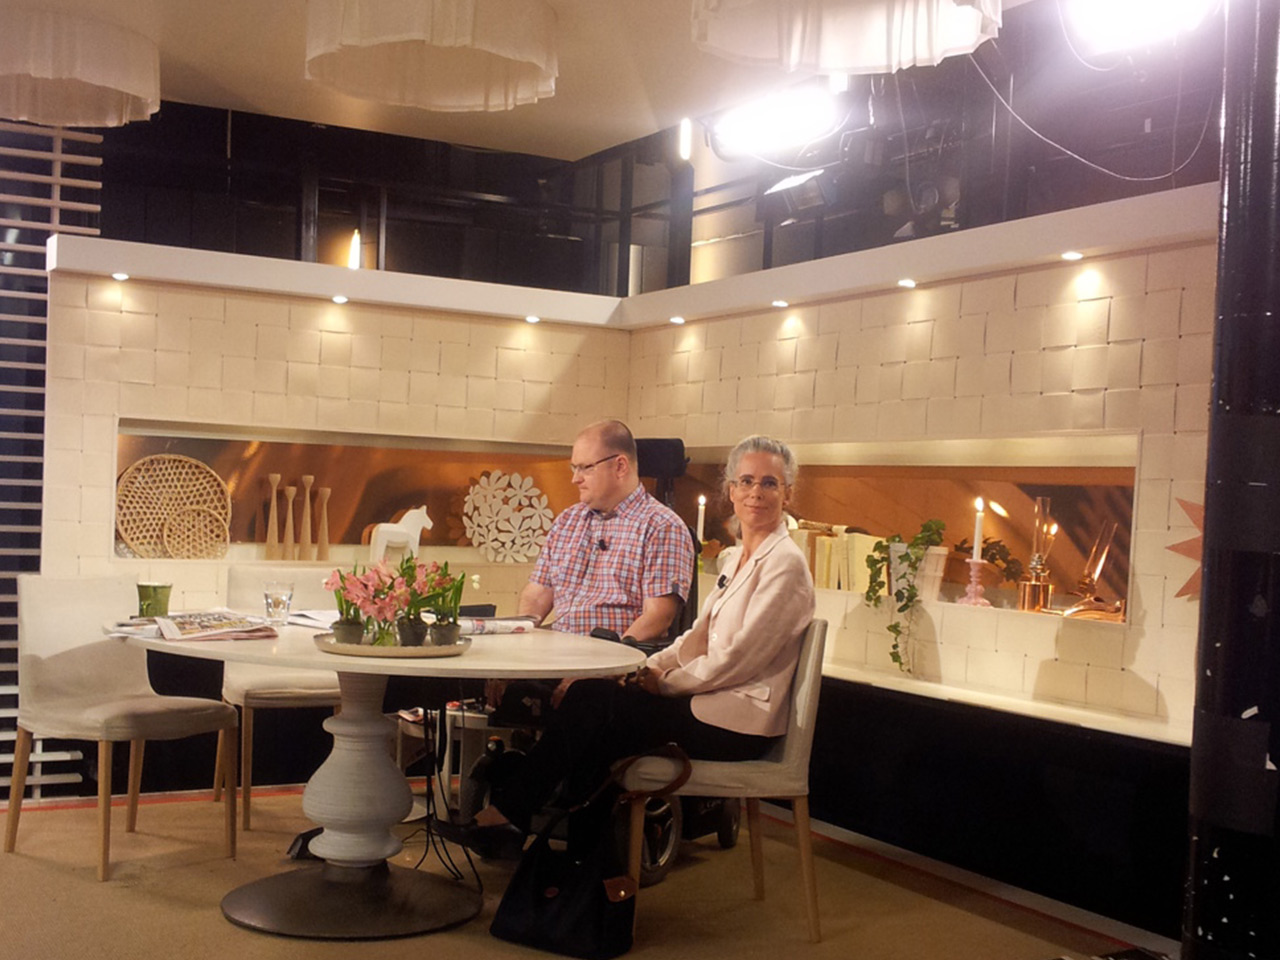 TV4 huset - morgonshow